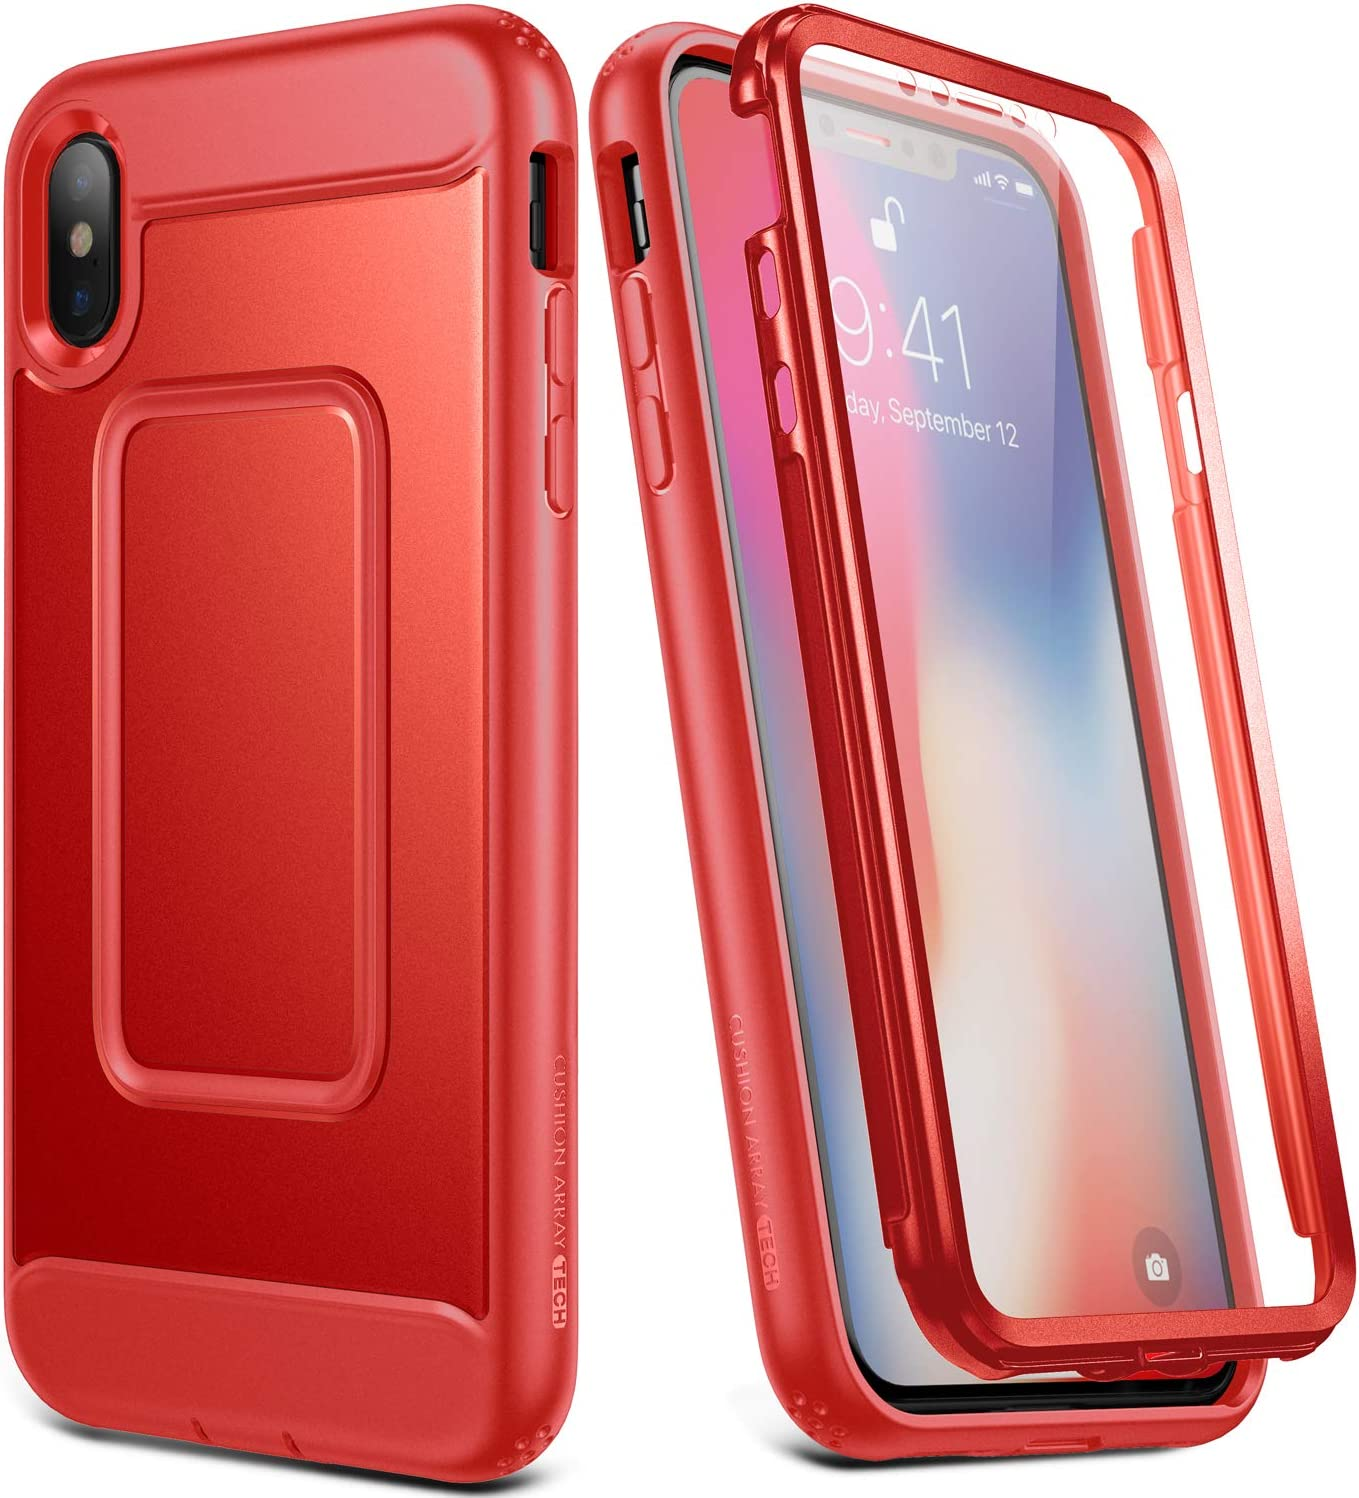 YOUMAKER Case for iPhone Xs & iPhone X, Full Body with Built-in Screen Protector Heavy Duty Protection Shockproof Slim Fit Cover for New Apple iPhone Xs (2018) & iPhone X (2017) 5.8 inch - Red